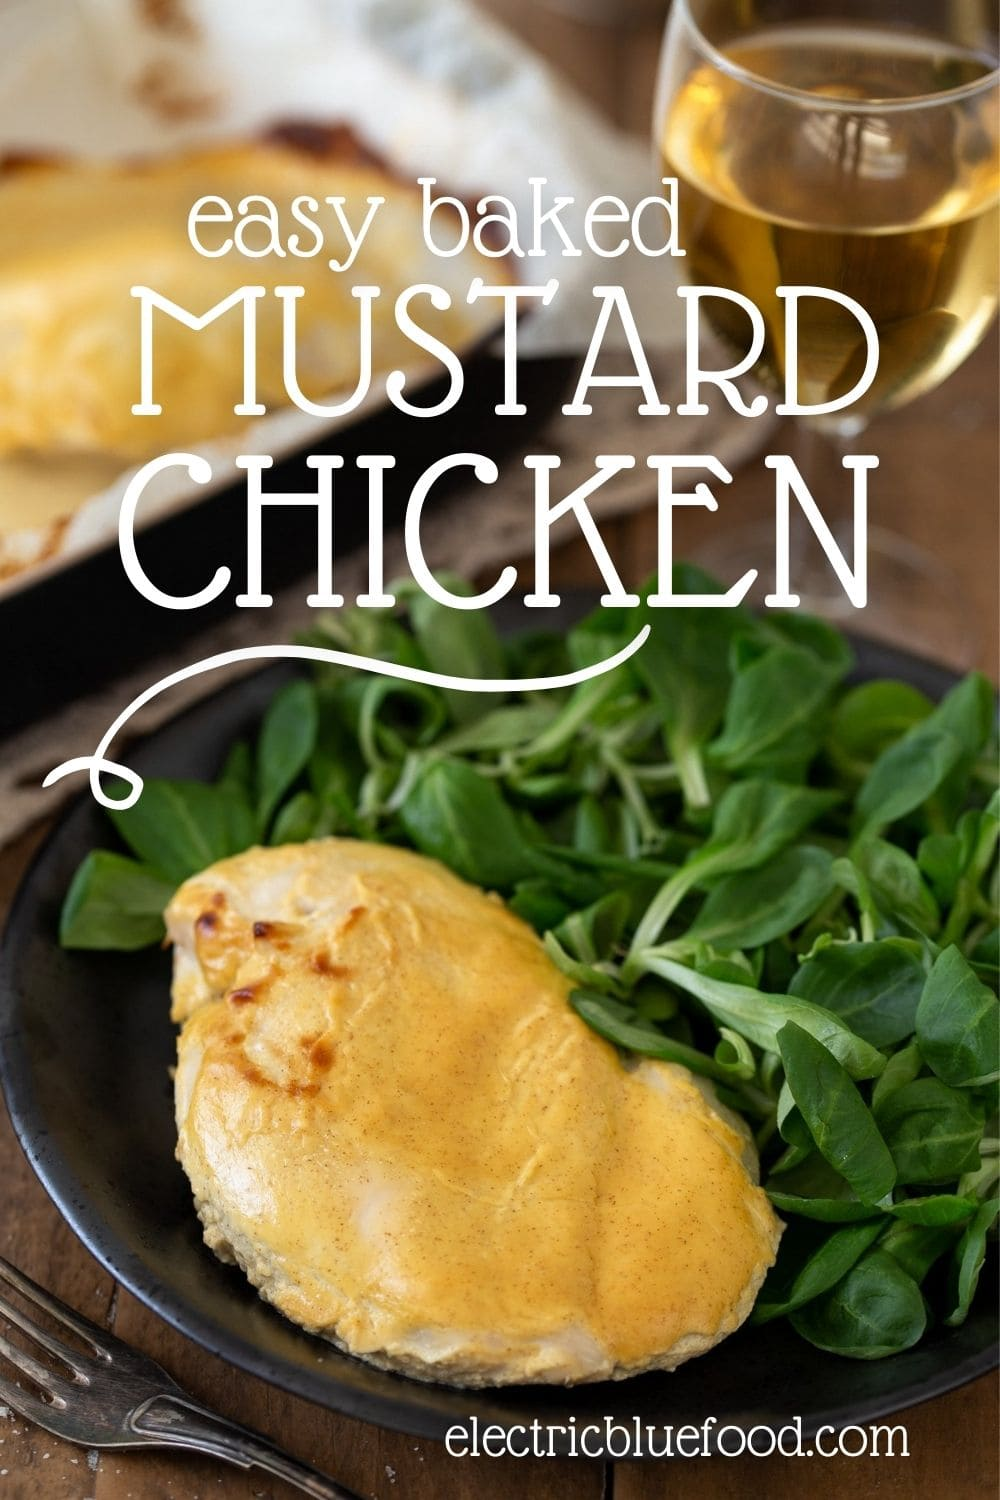 Baked chicken breasts with mustard, an easy dish that requires very little preparation and lands you a healthy simple dinner in just over a half hour.